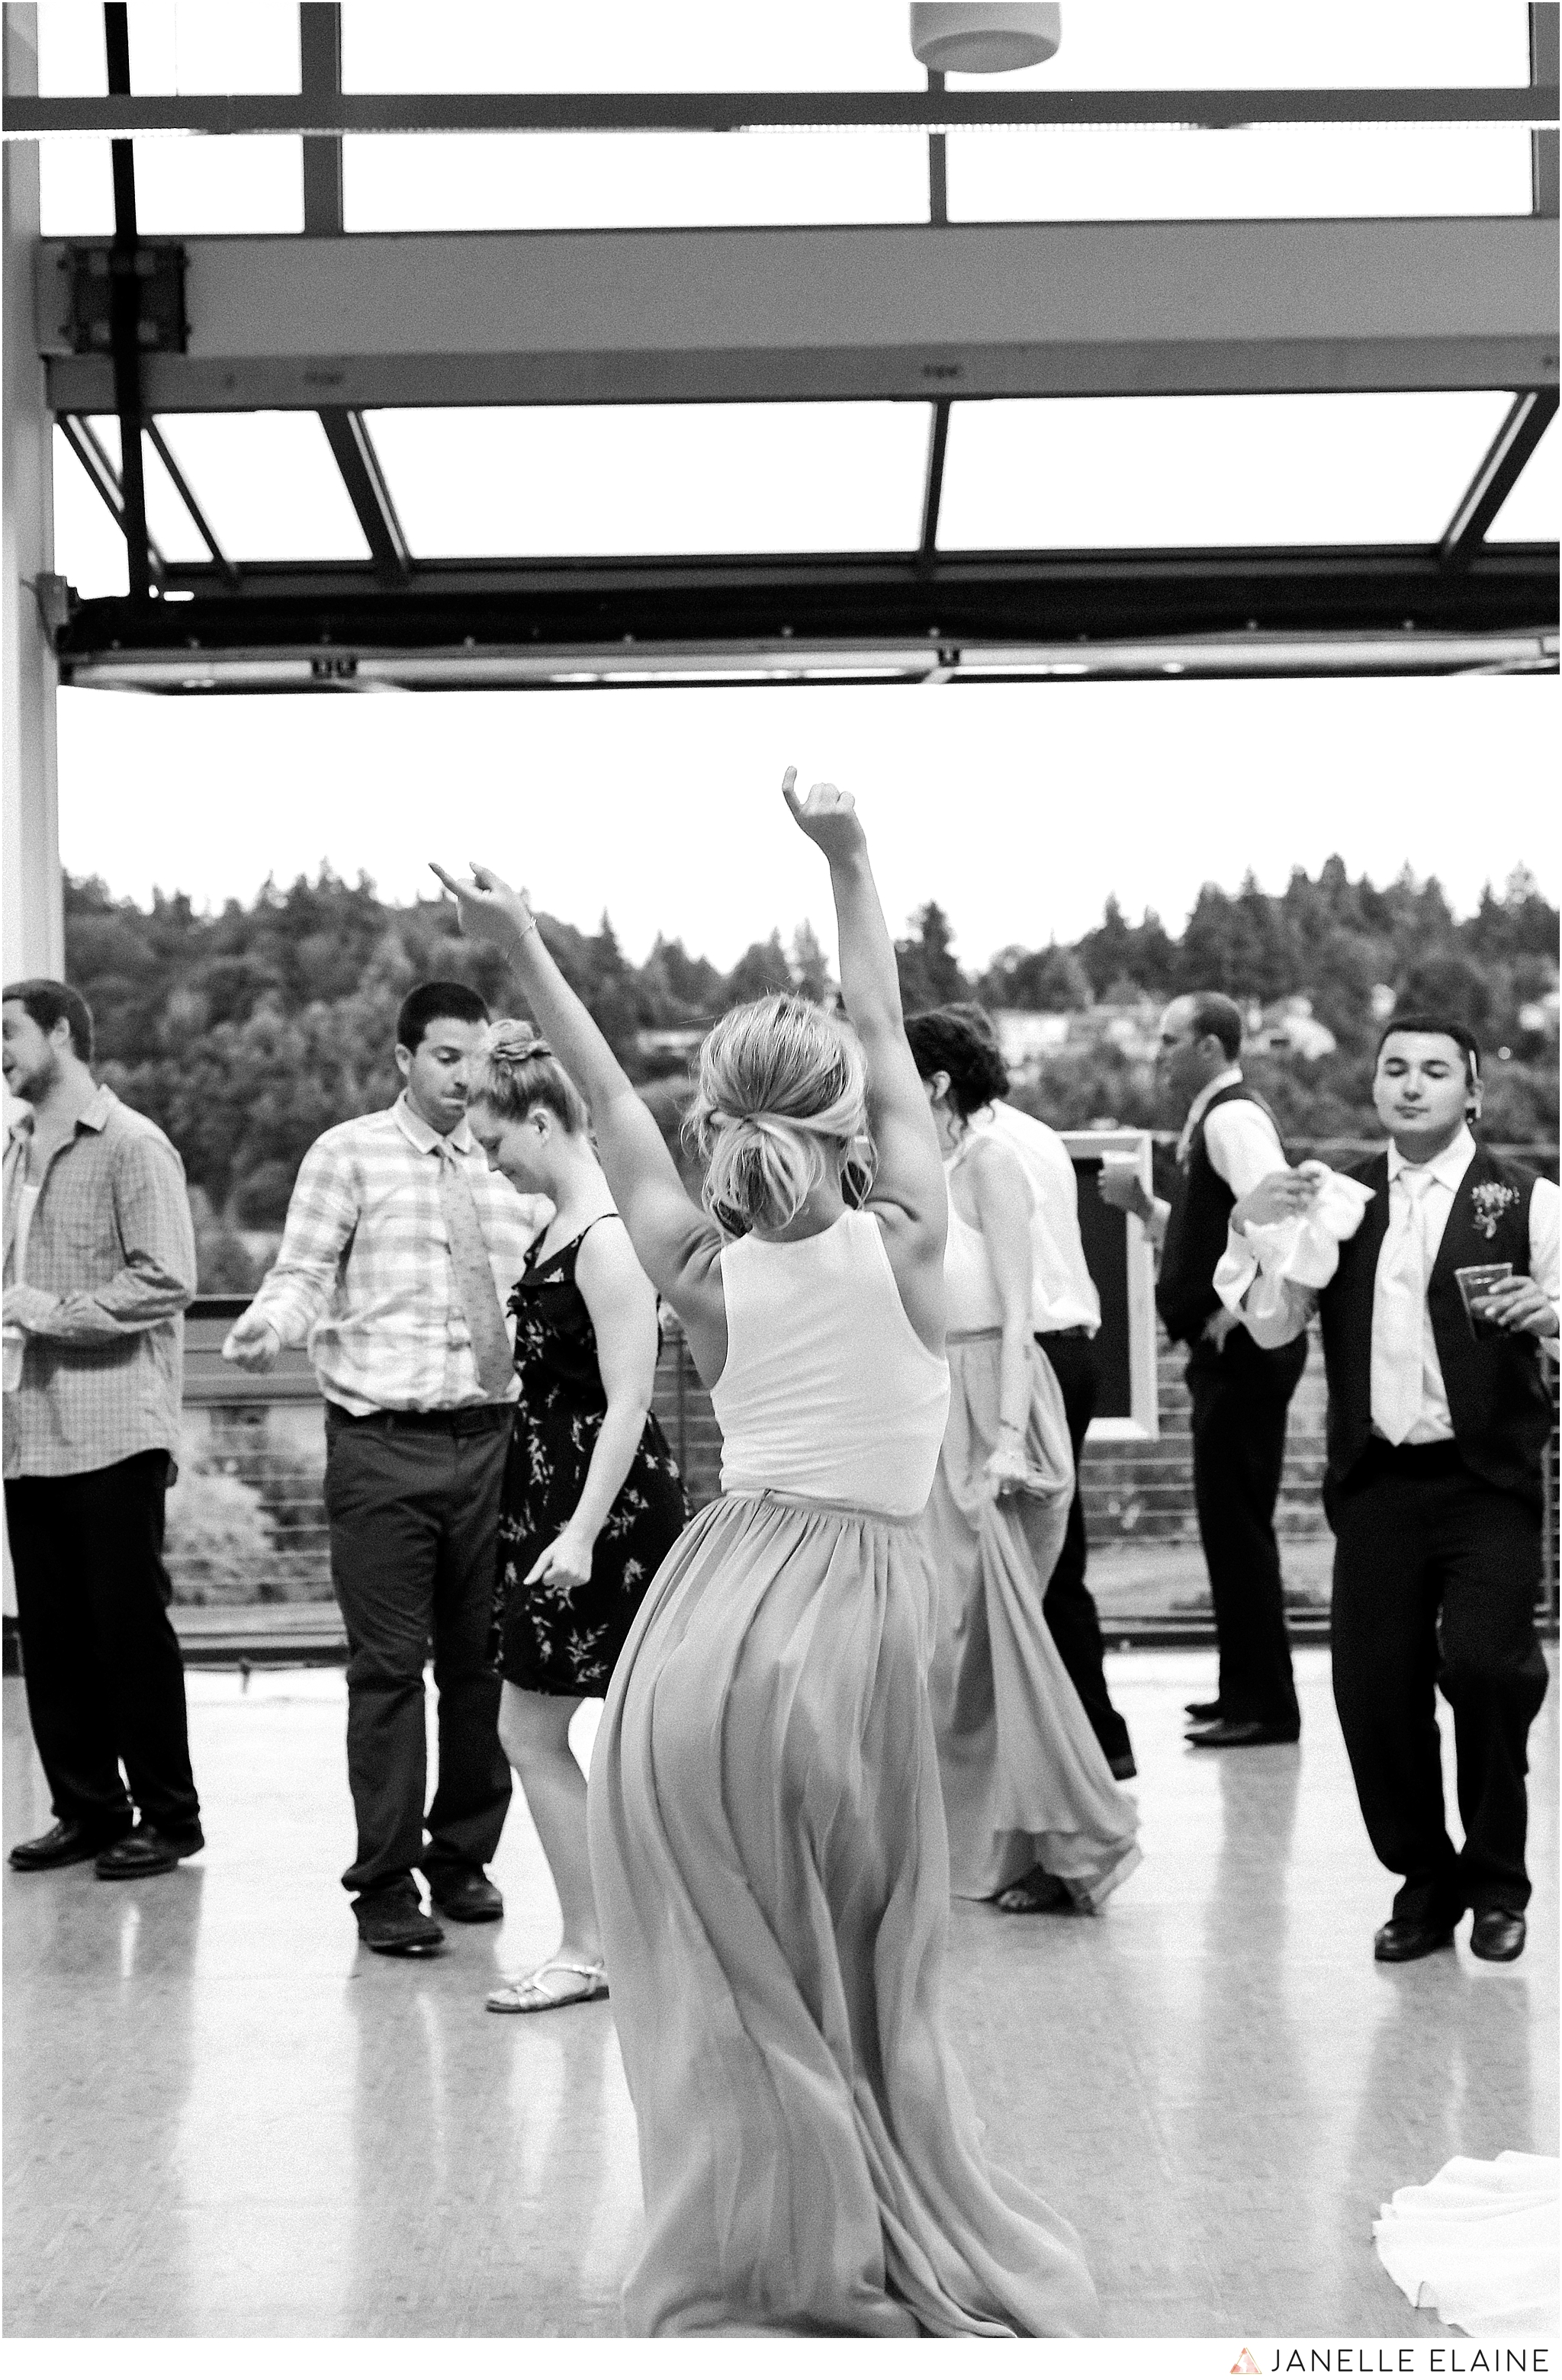 janelle elaine photography-jimmynicole-luther burbank park-seattle-wedding-240.jpg